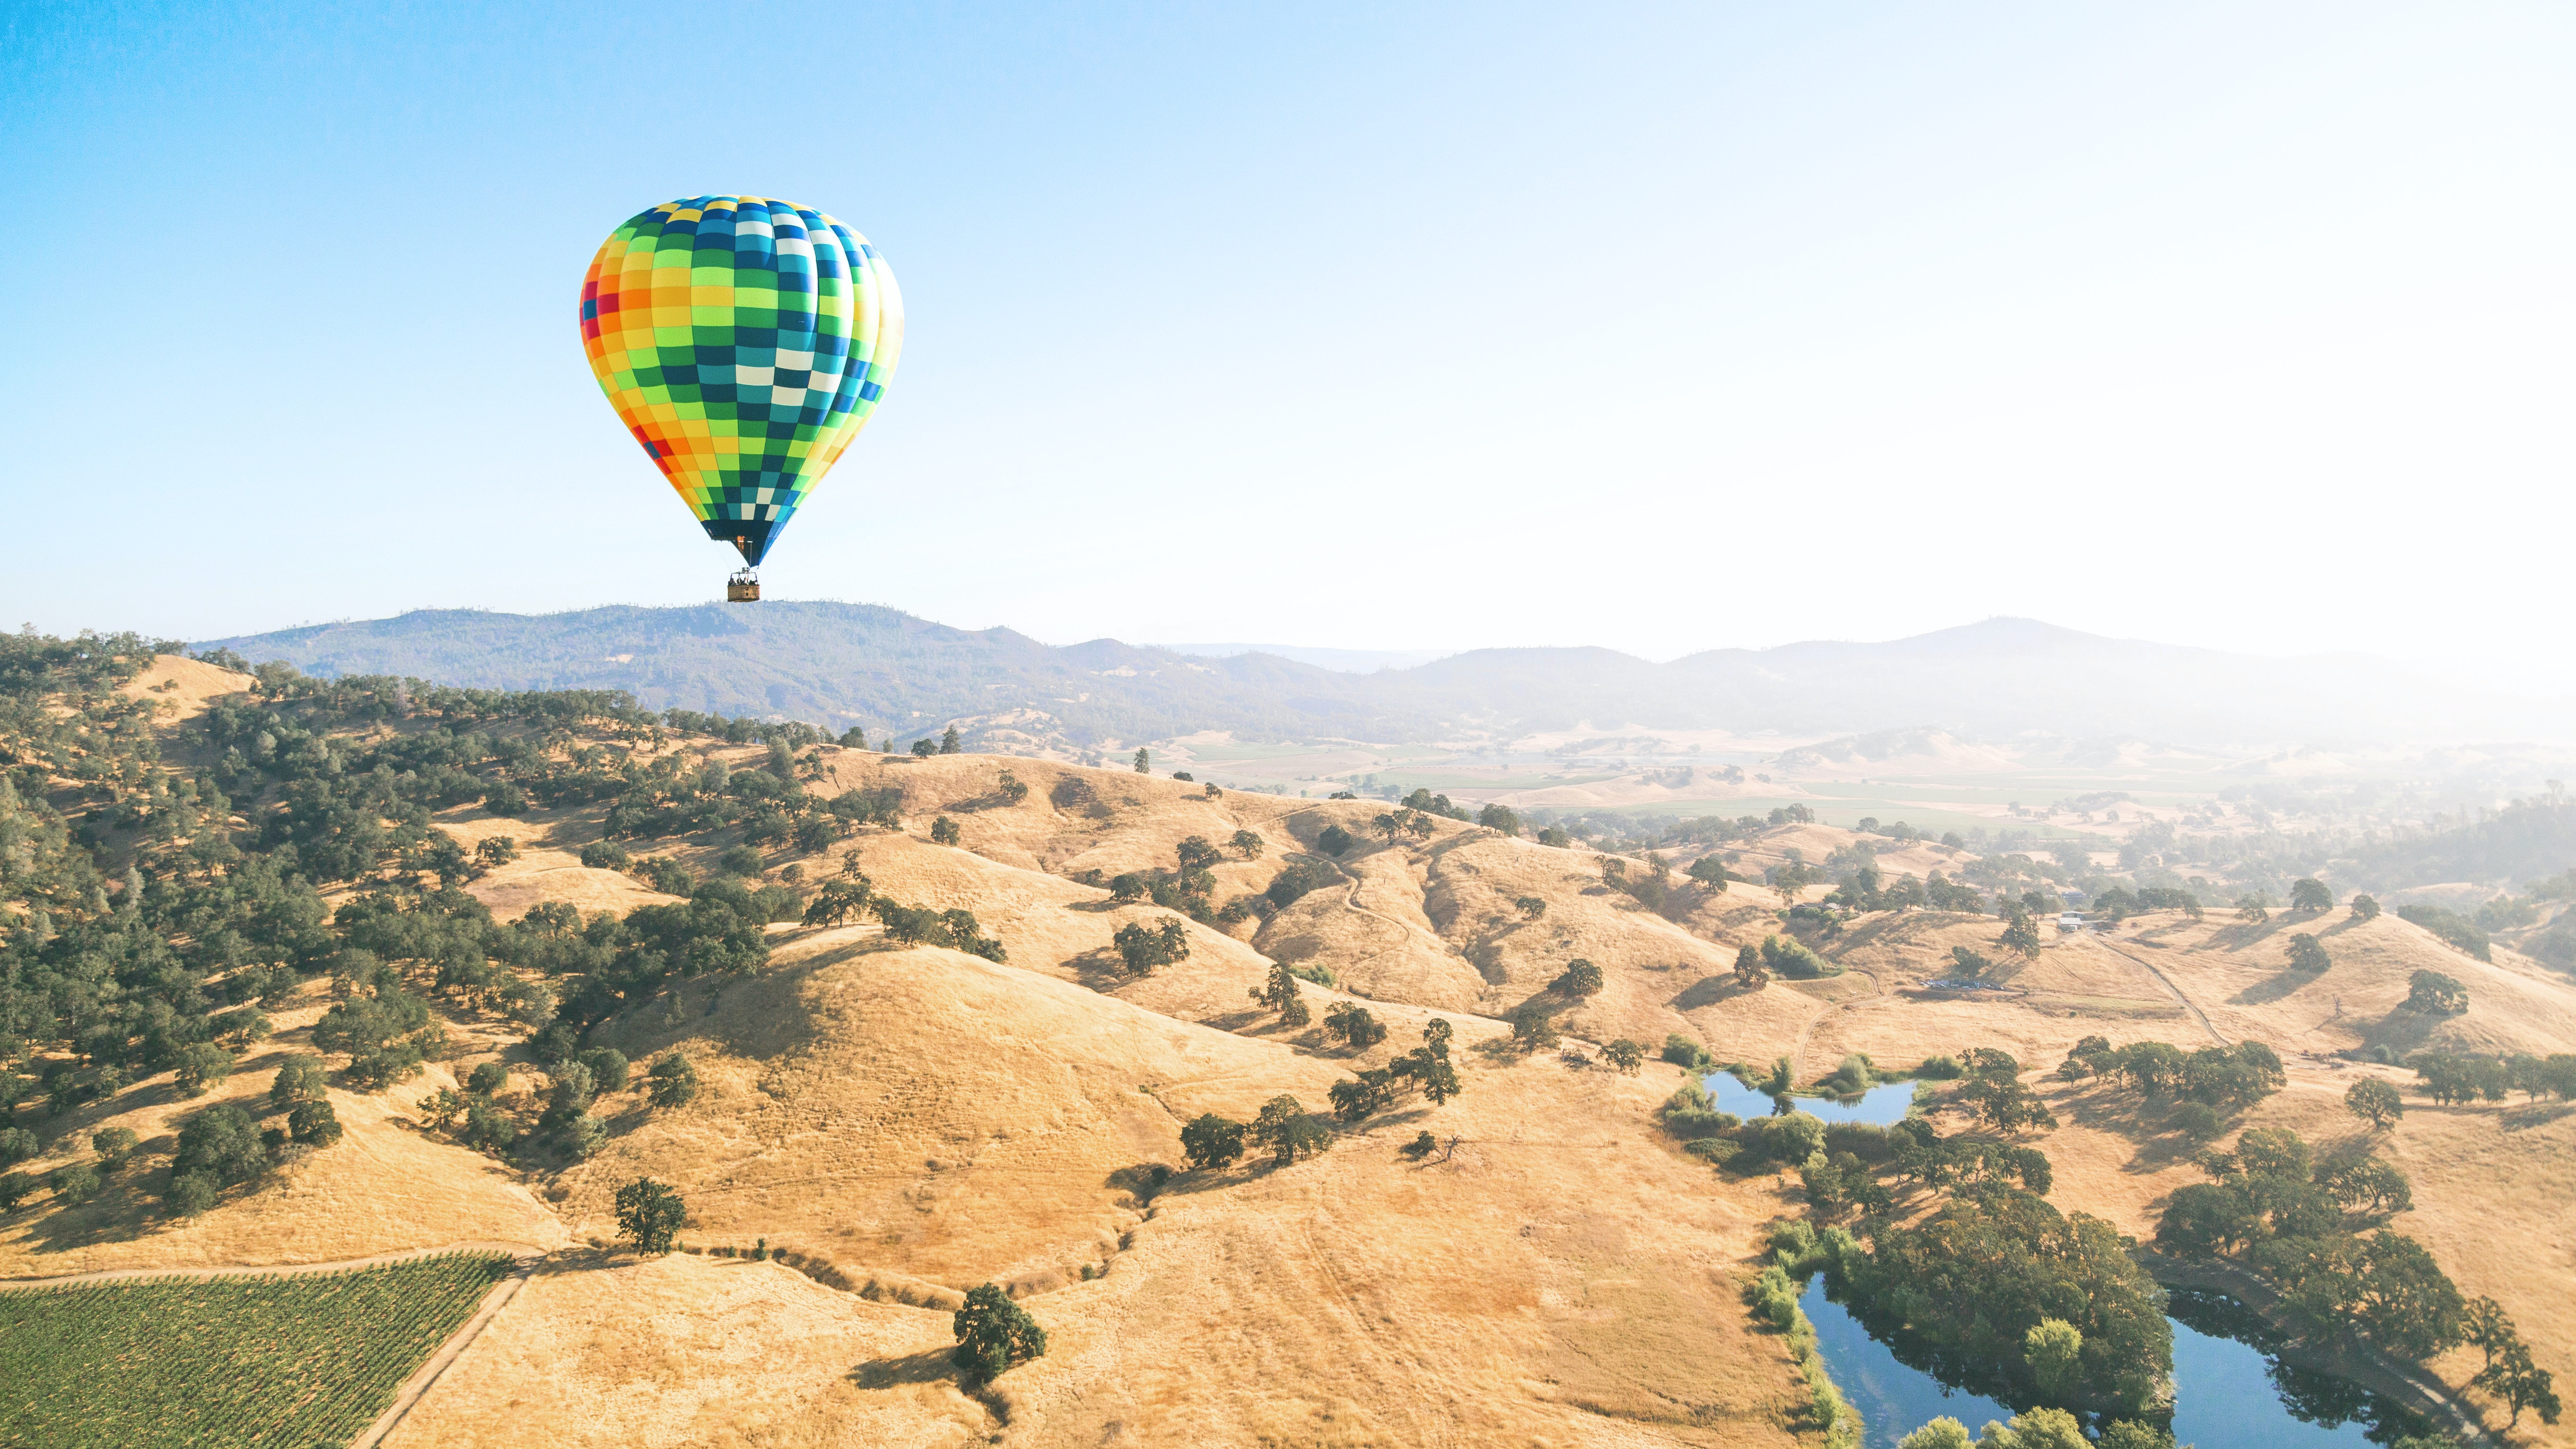 A colorful hot air balloon over golden hills in Napa Valley